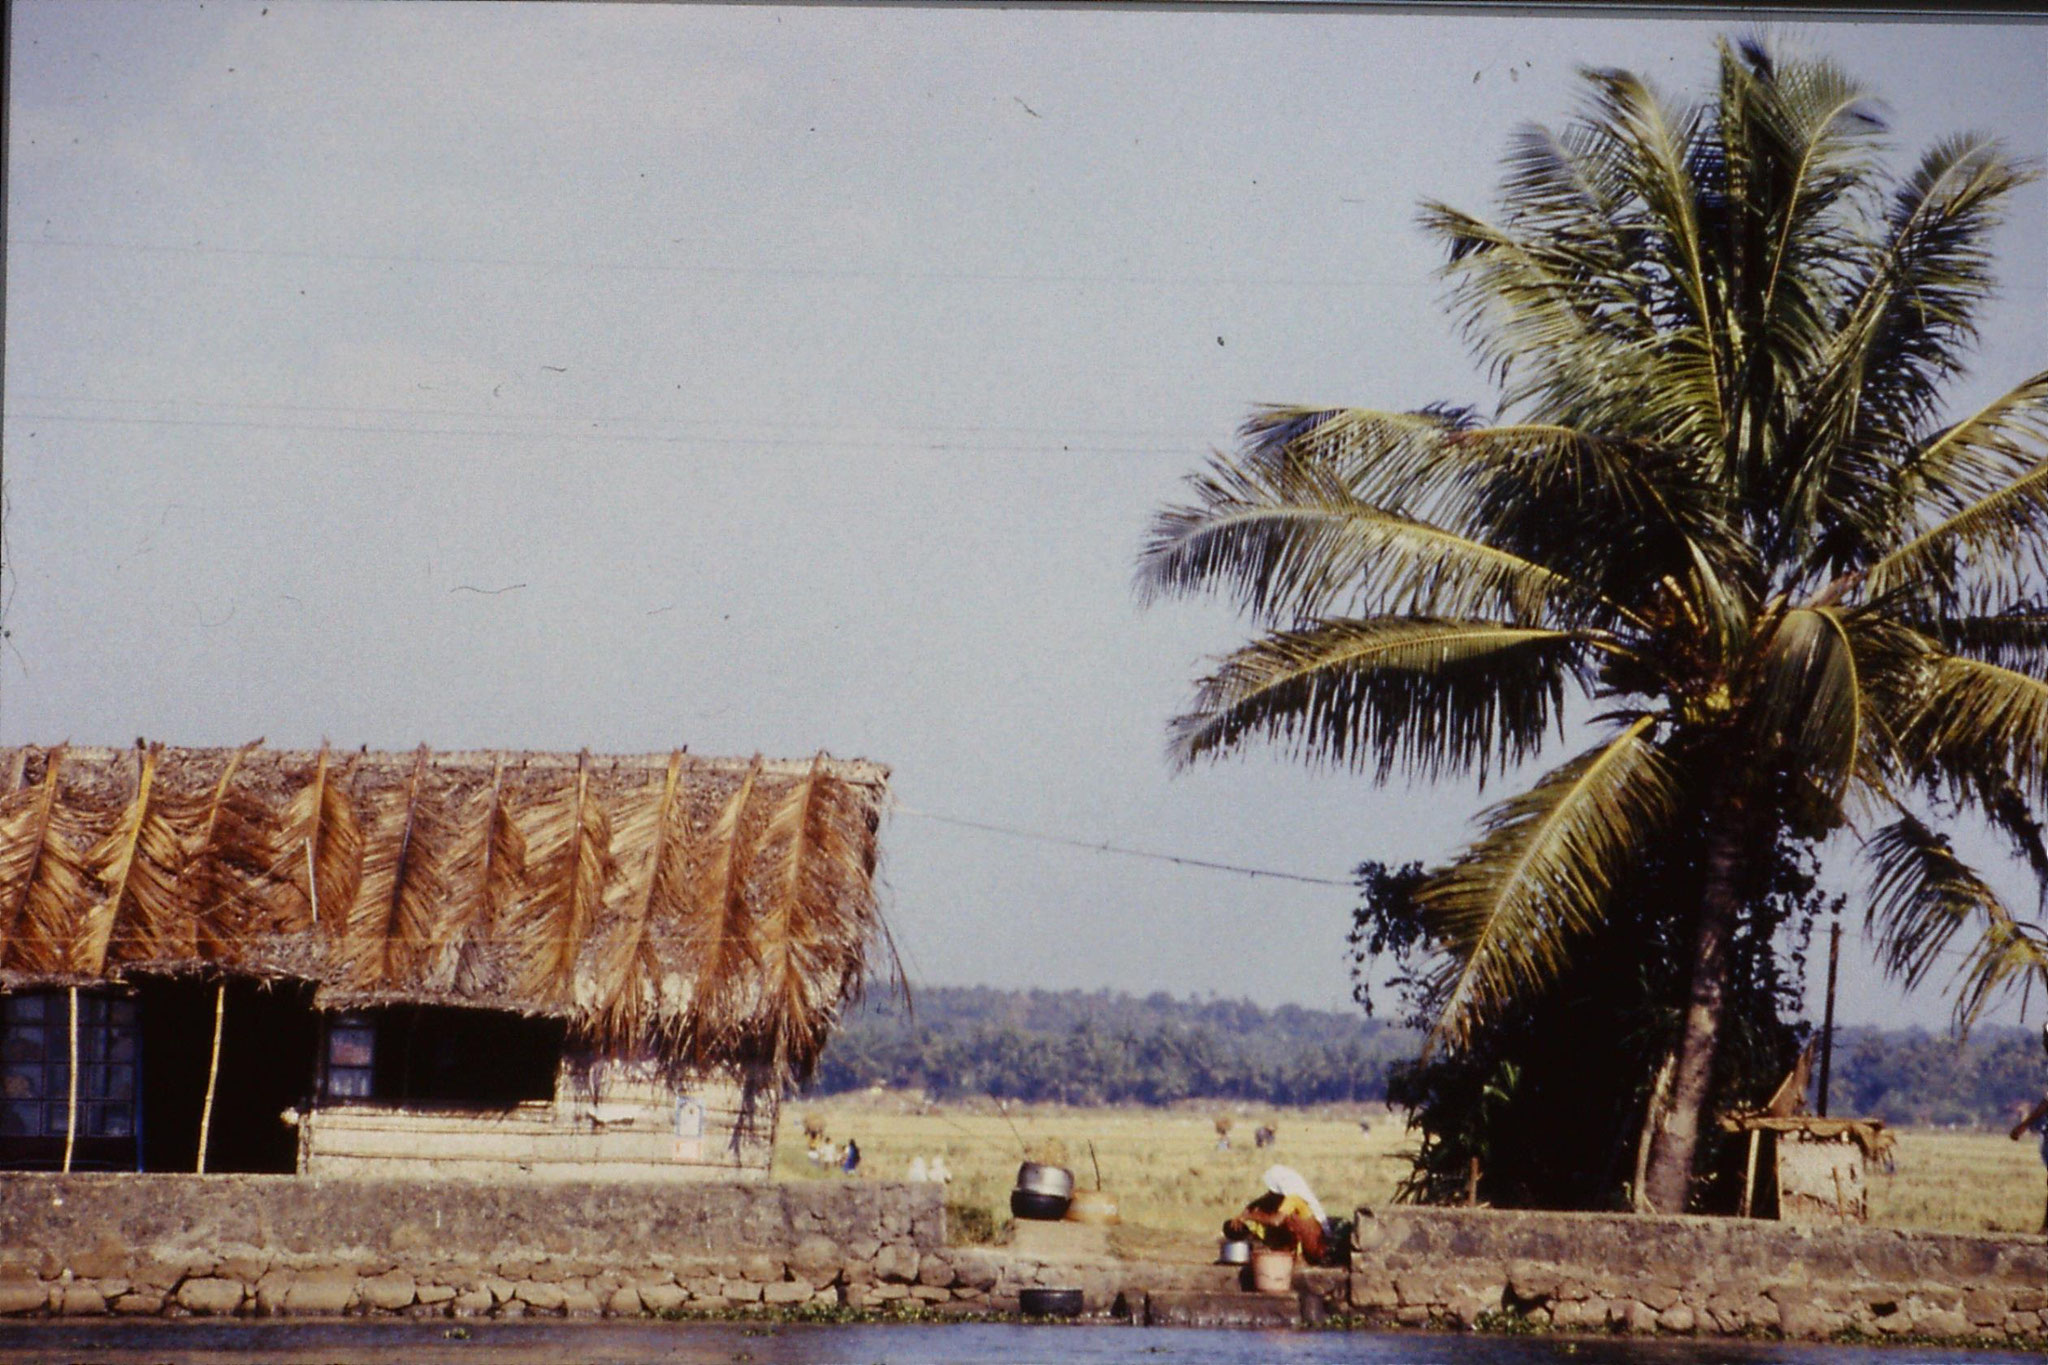 106/6: 23/2/1990  Boat to Alleppey